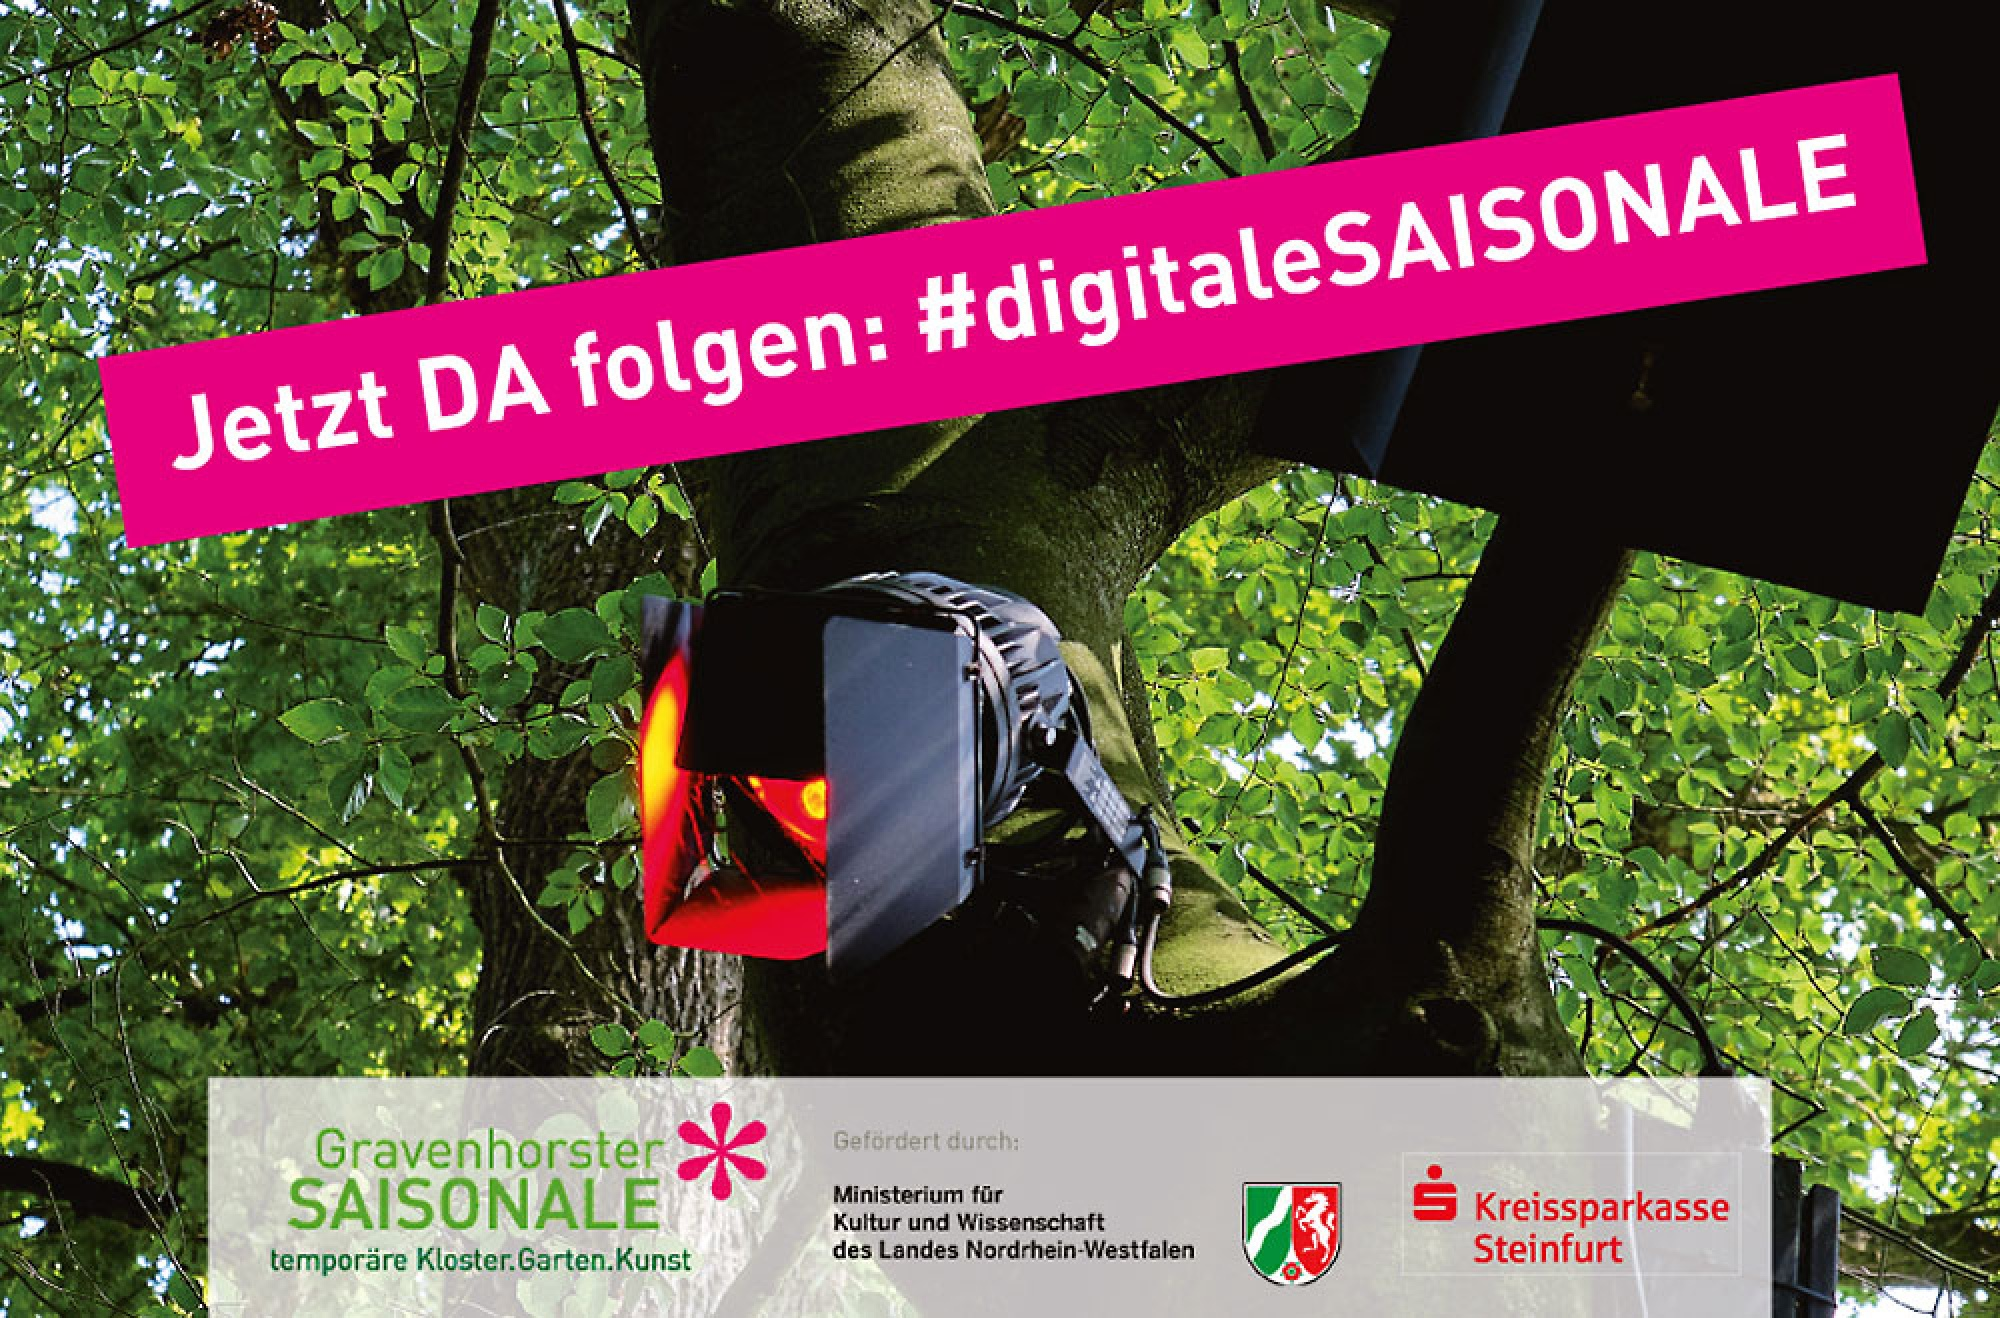 #digitaleSAISONALE auf Instagram